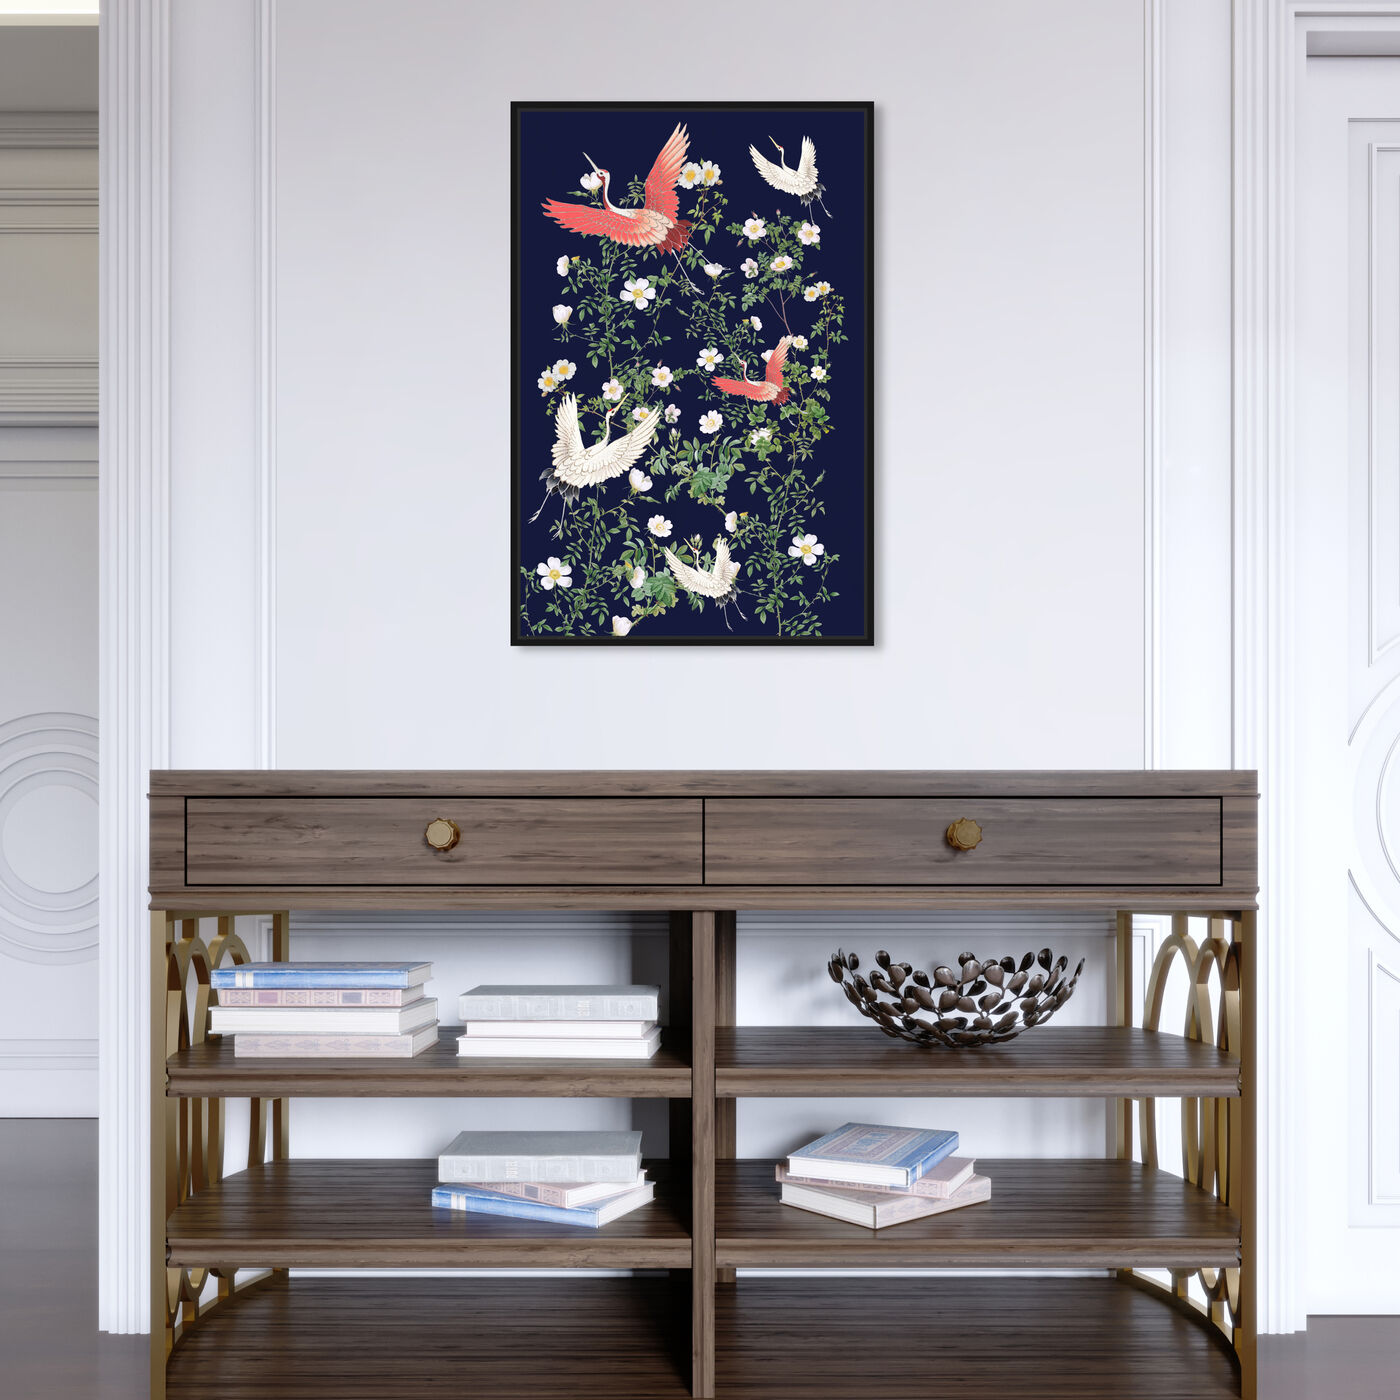 Hanging view of Take Flight featuring animals and birds art.